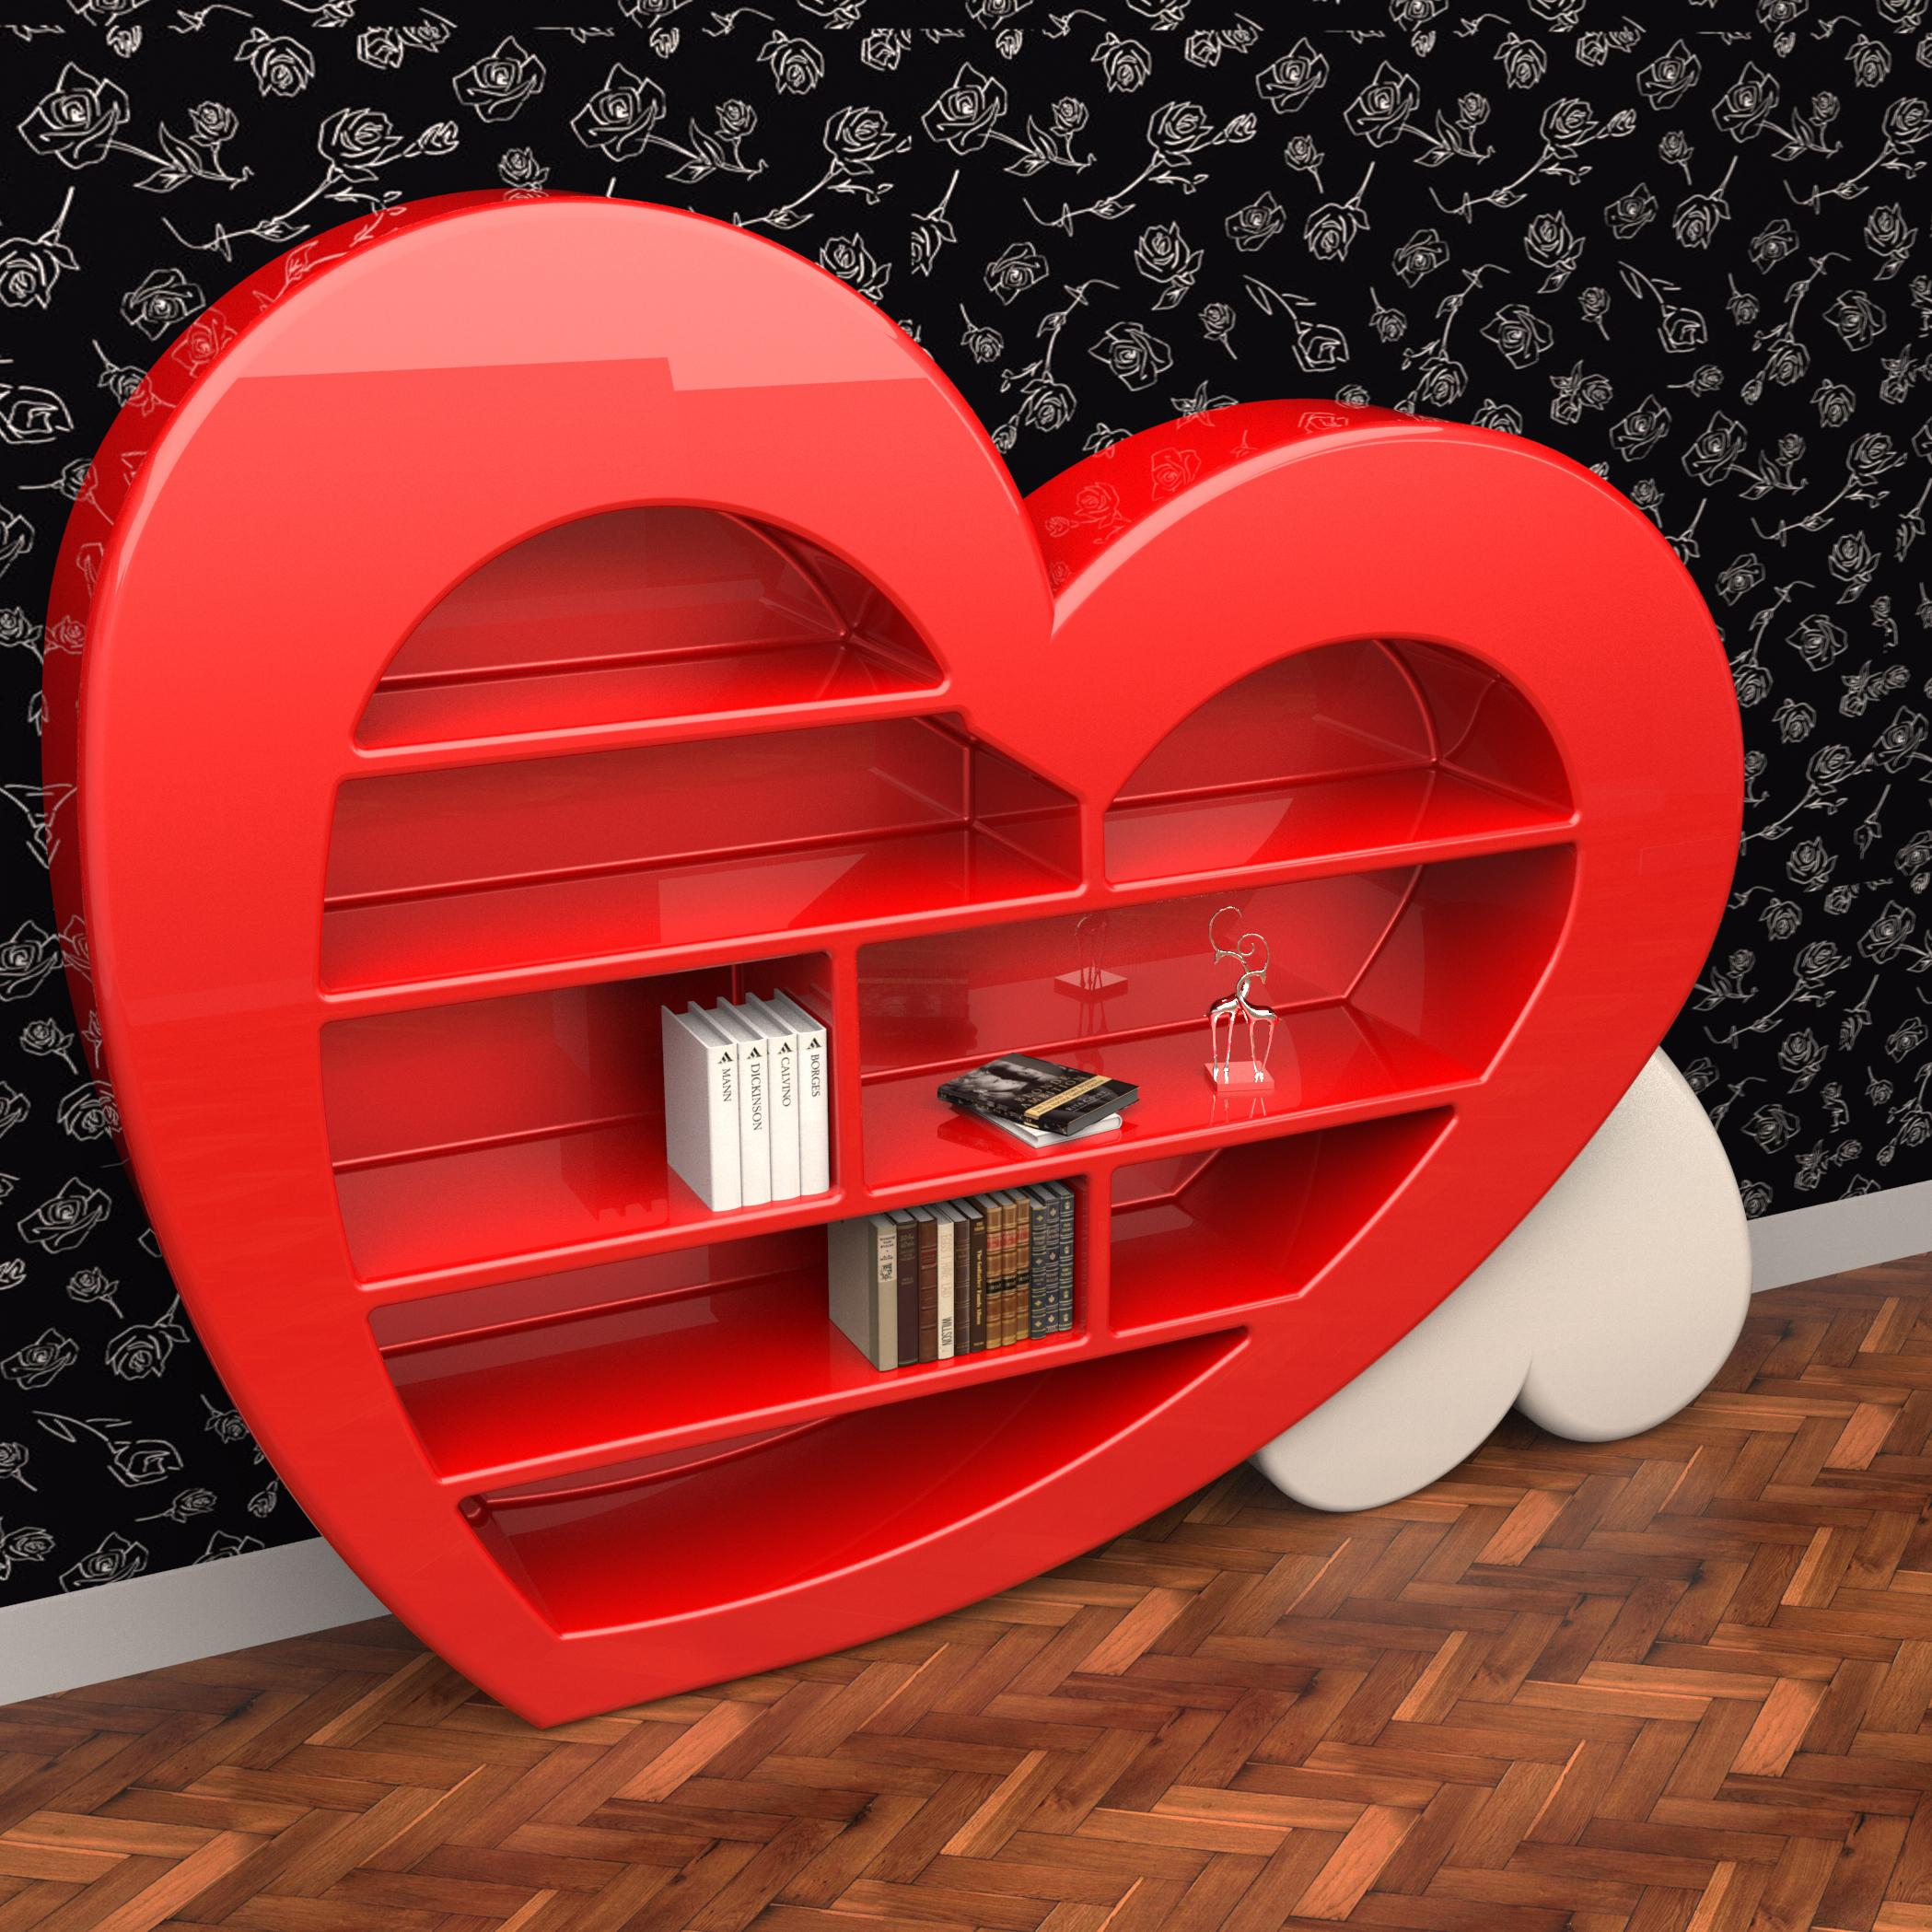 Heart shaped bookcase cupboard cabinet ideas shelves size furniture stores choice design delivery factors sale home house makers manufacturers quality retailers websites